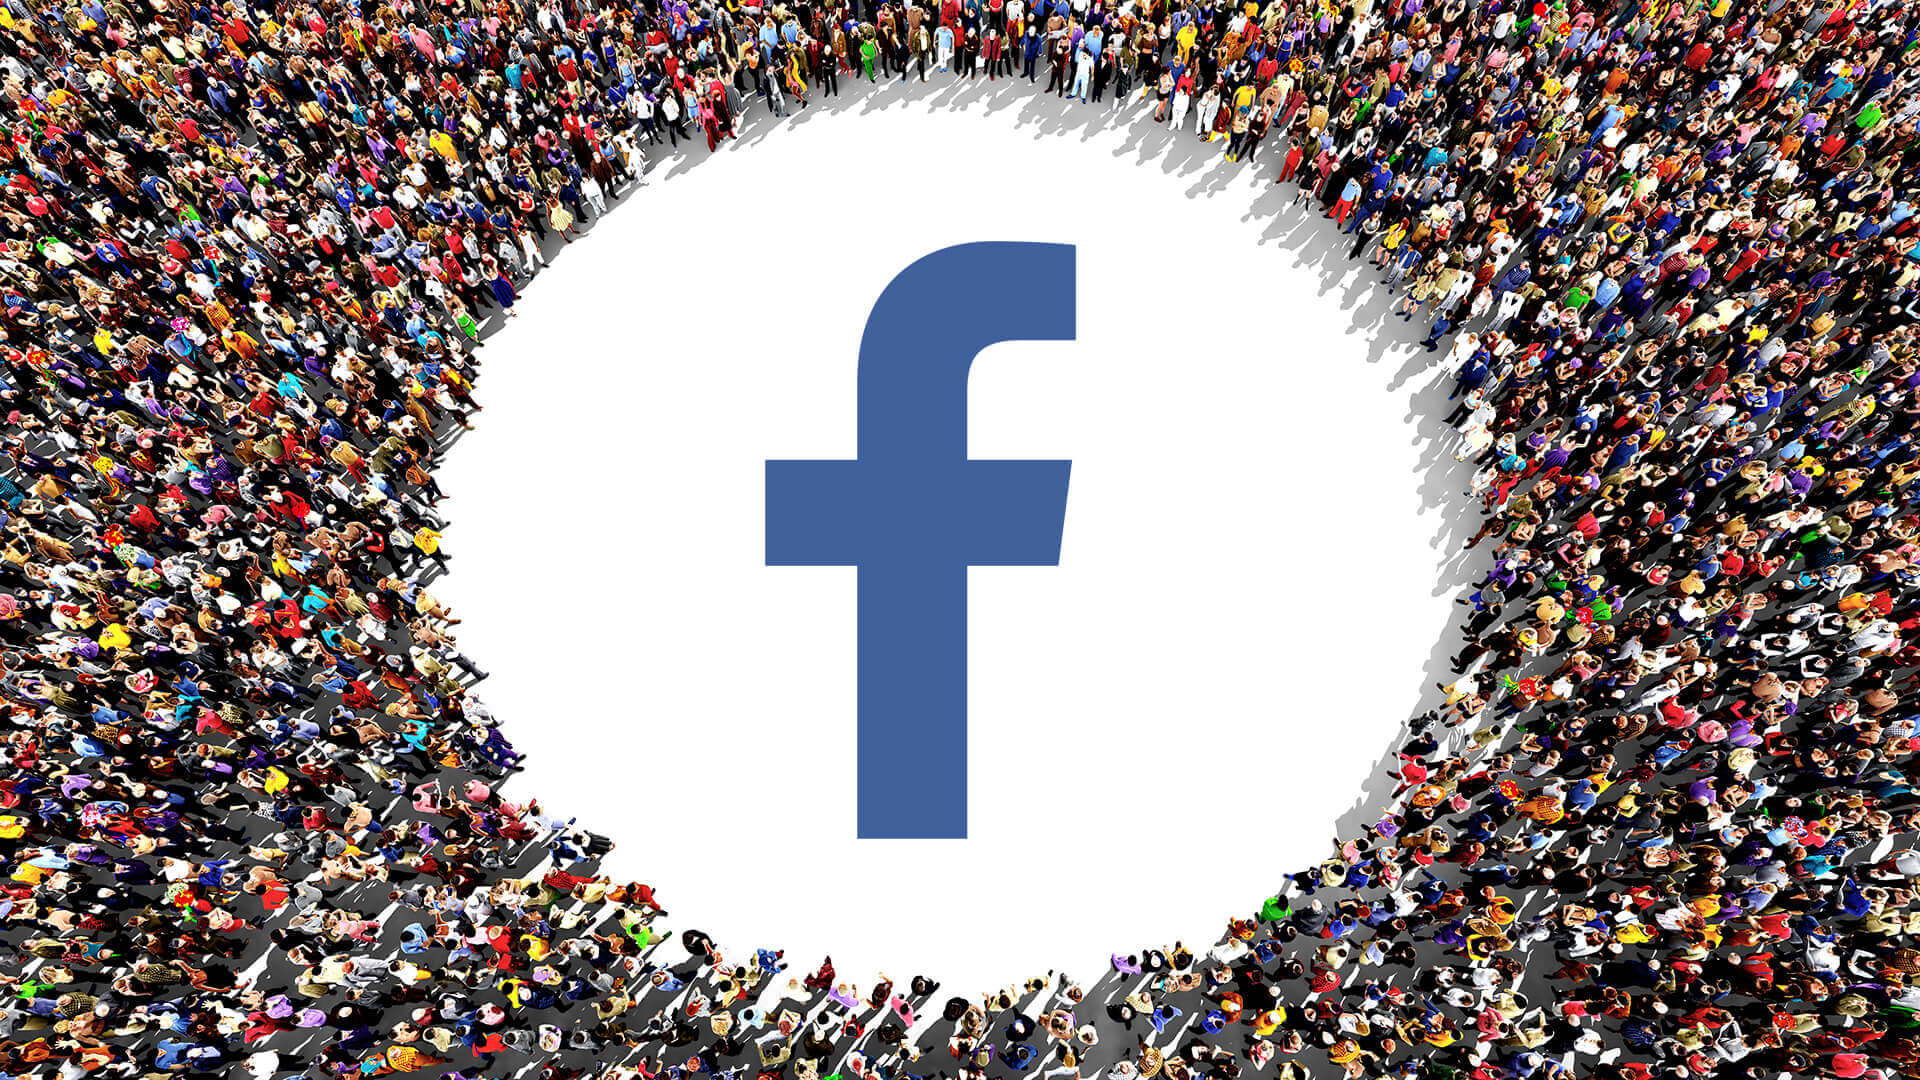 Facebook to remove thousands of outdated interest targets for advertising